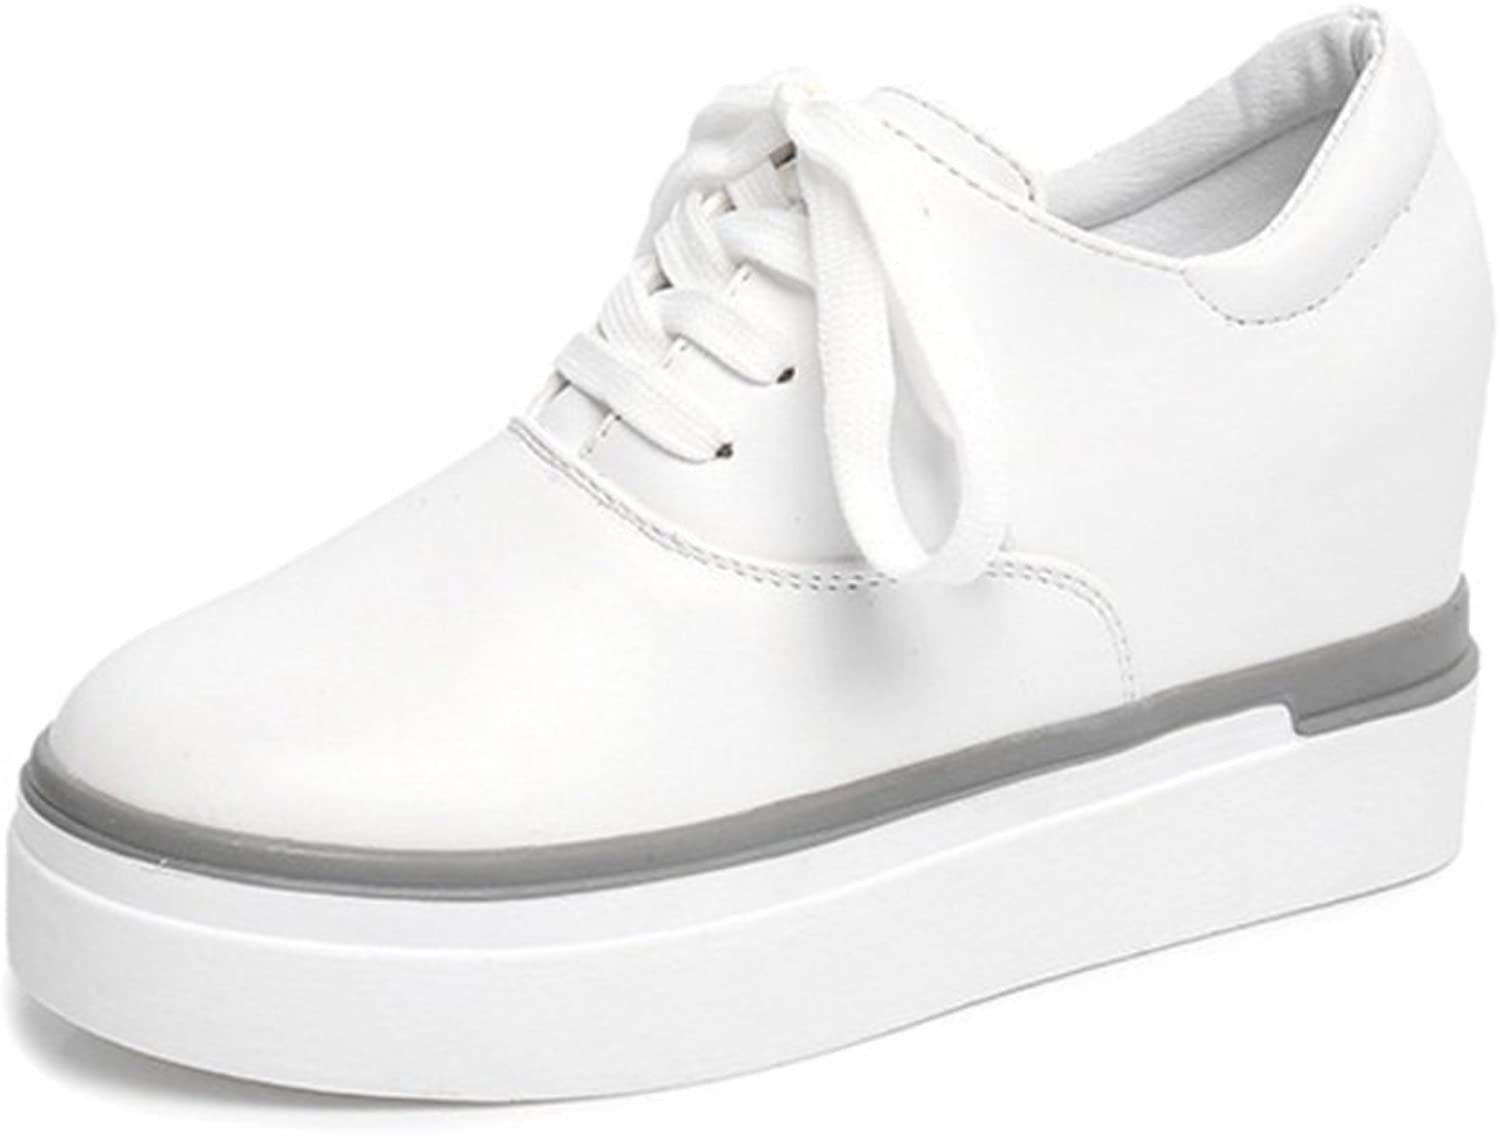 Autumn shoes Platform with Small White shoes Female Students ' Arts and Leisure shoes end of Platform high shoes